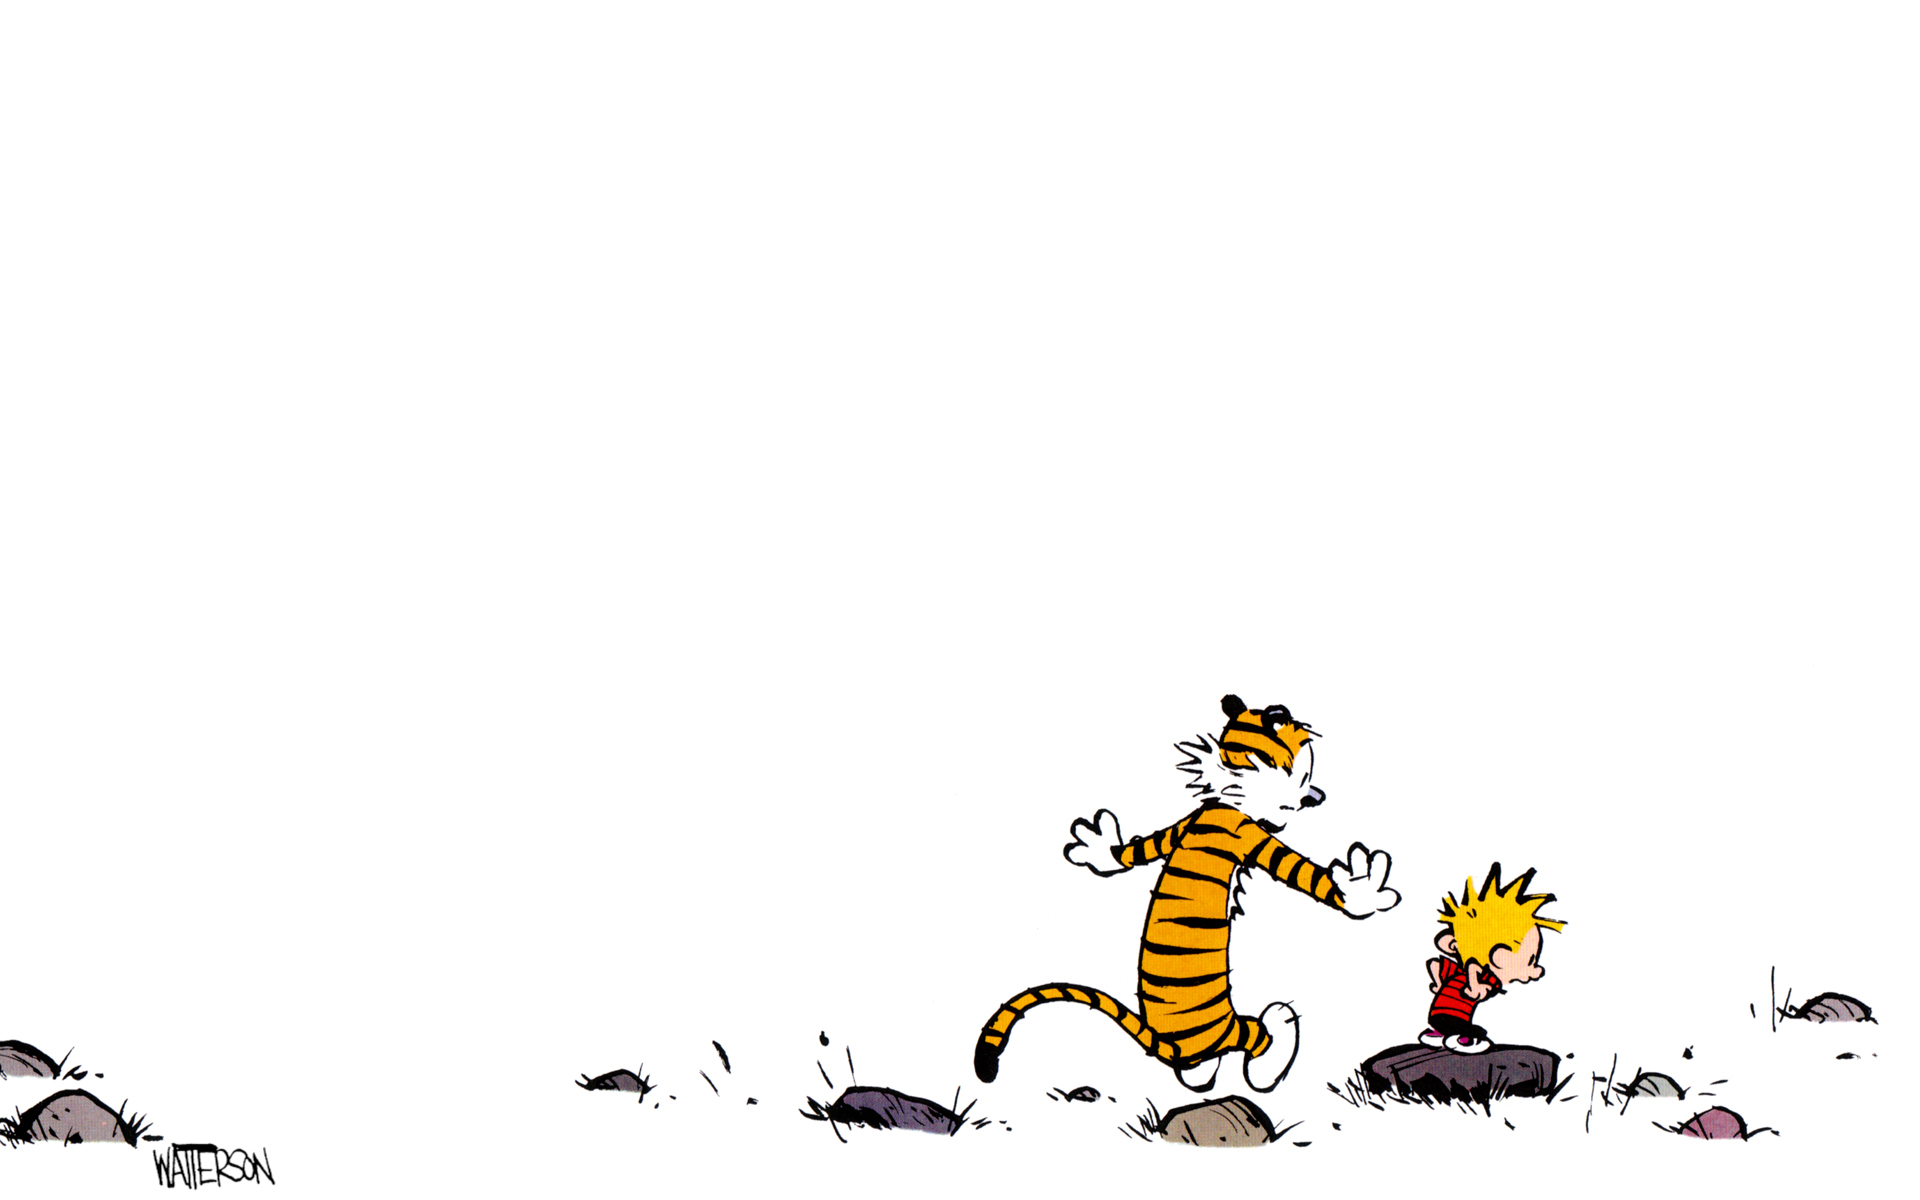 calvin and hobbes HD Wallpaper   General 1002204 1920x1200